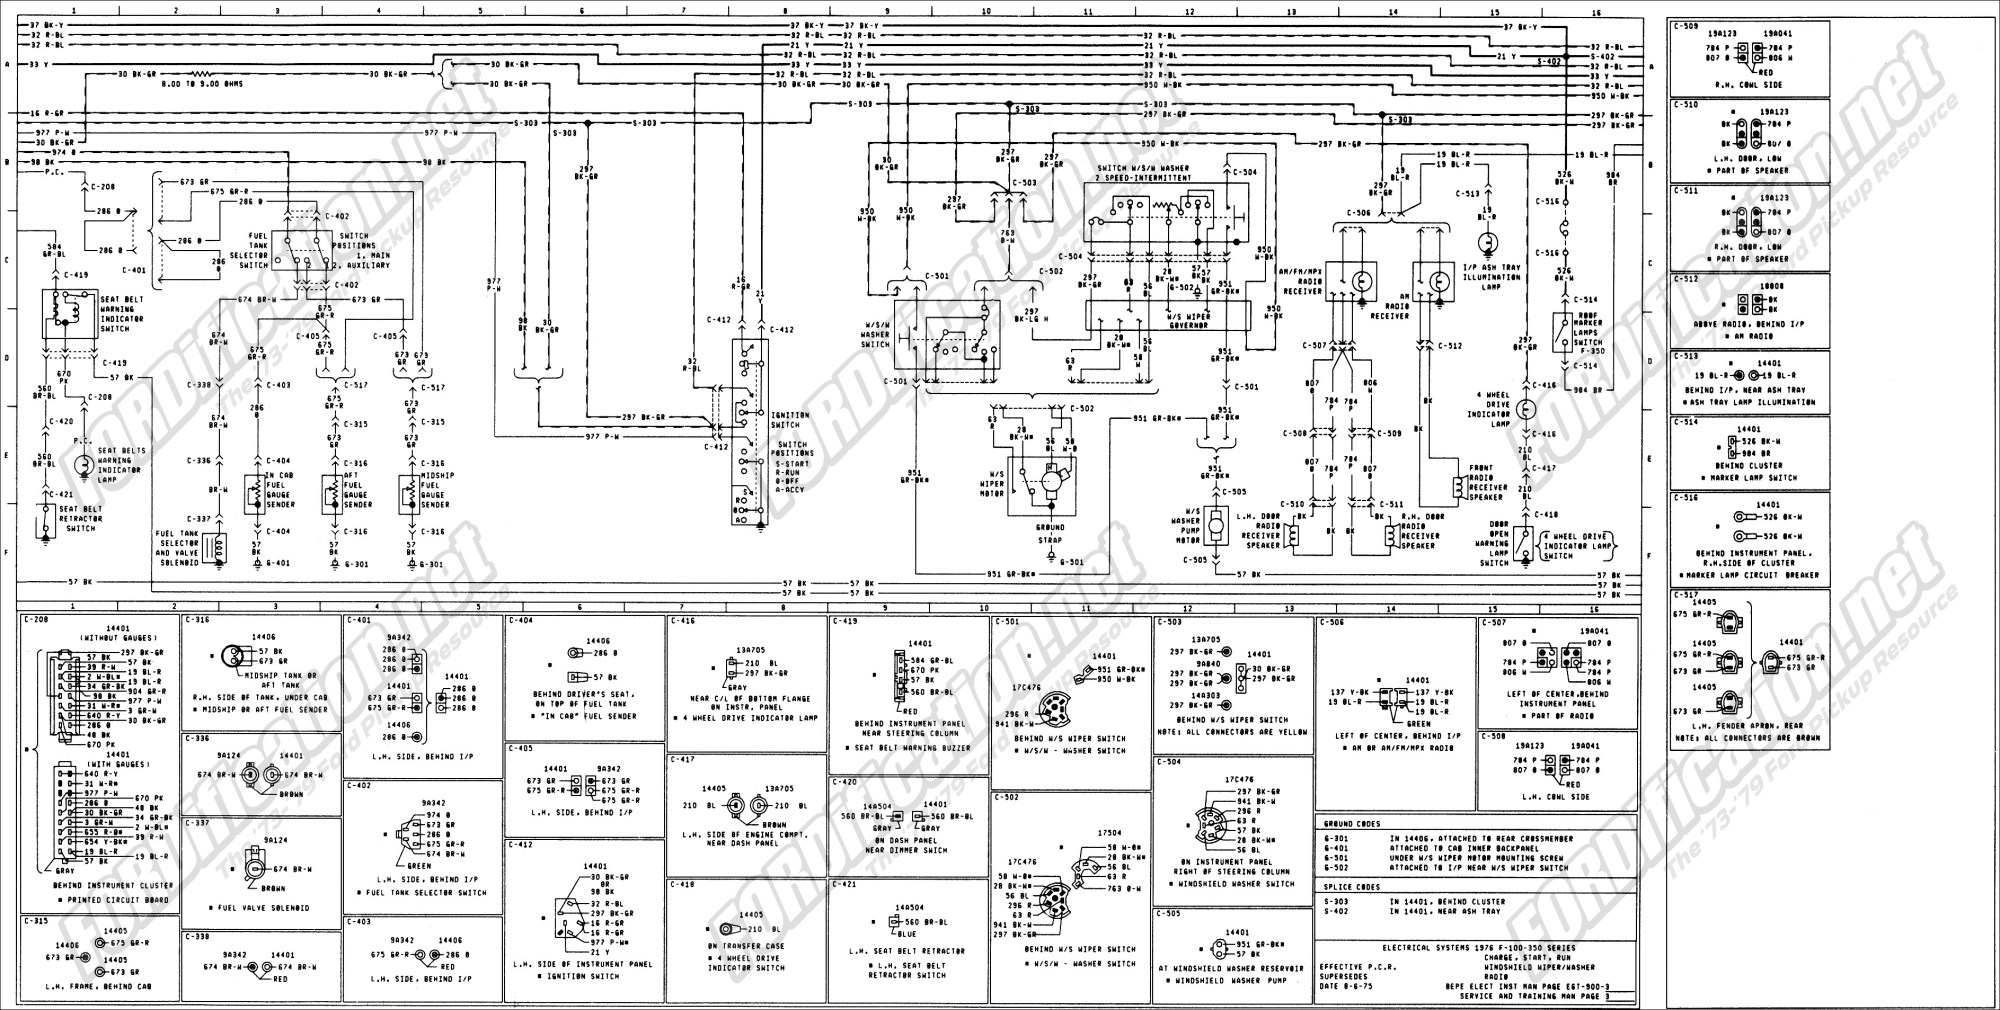 hight resolution of 1979 f250 supercab fuse panel diagram wiring diagram used 1979 f250 supercab fuse panel diagram